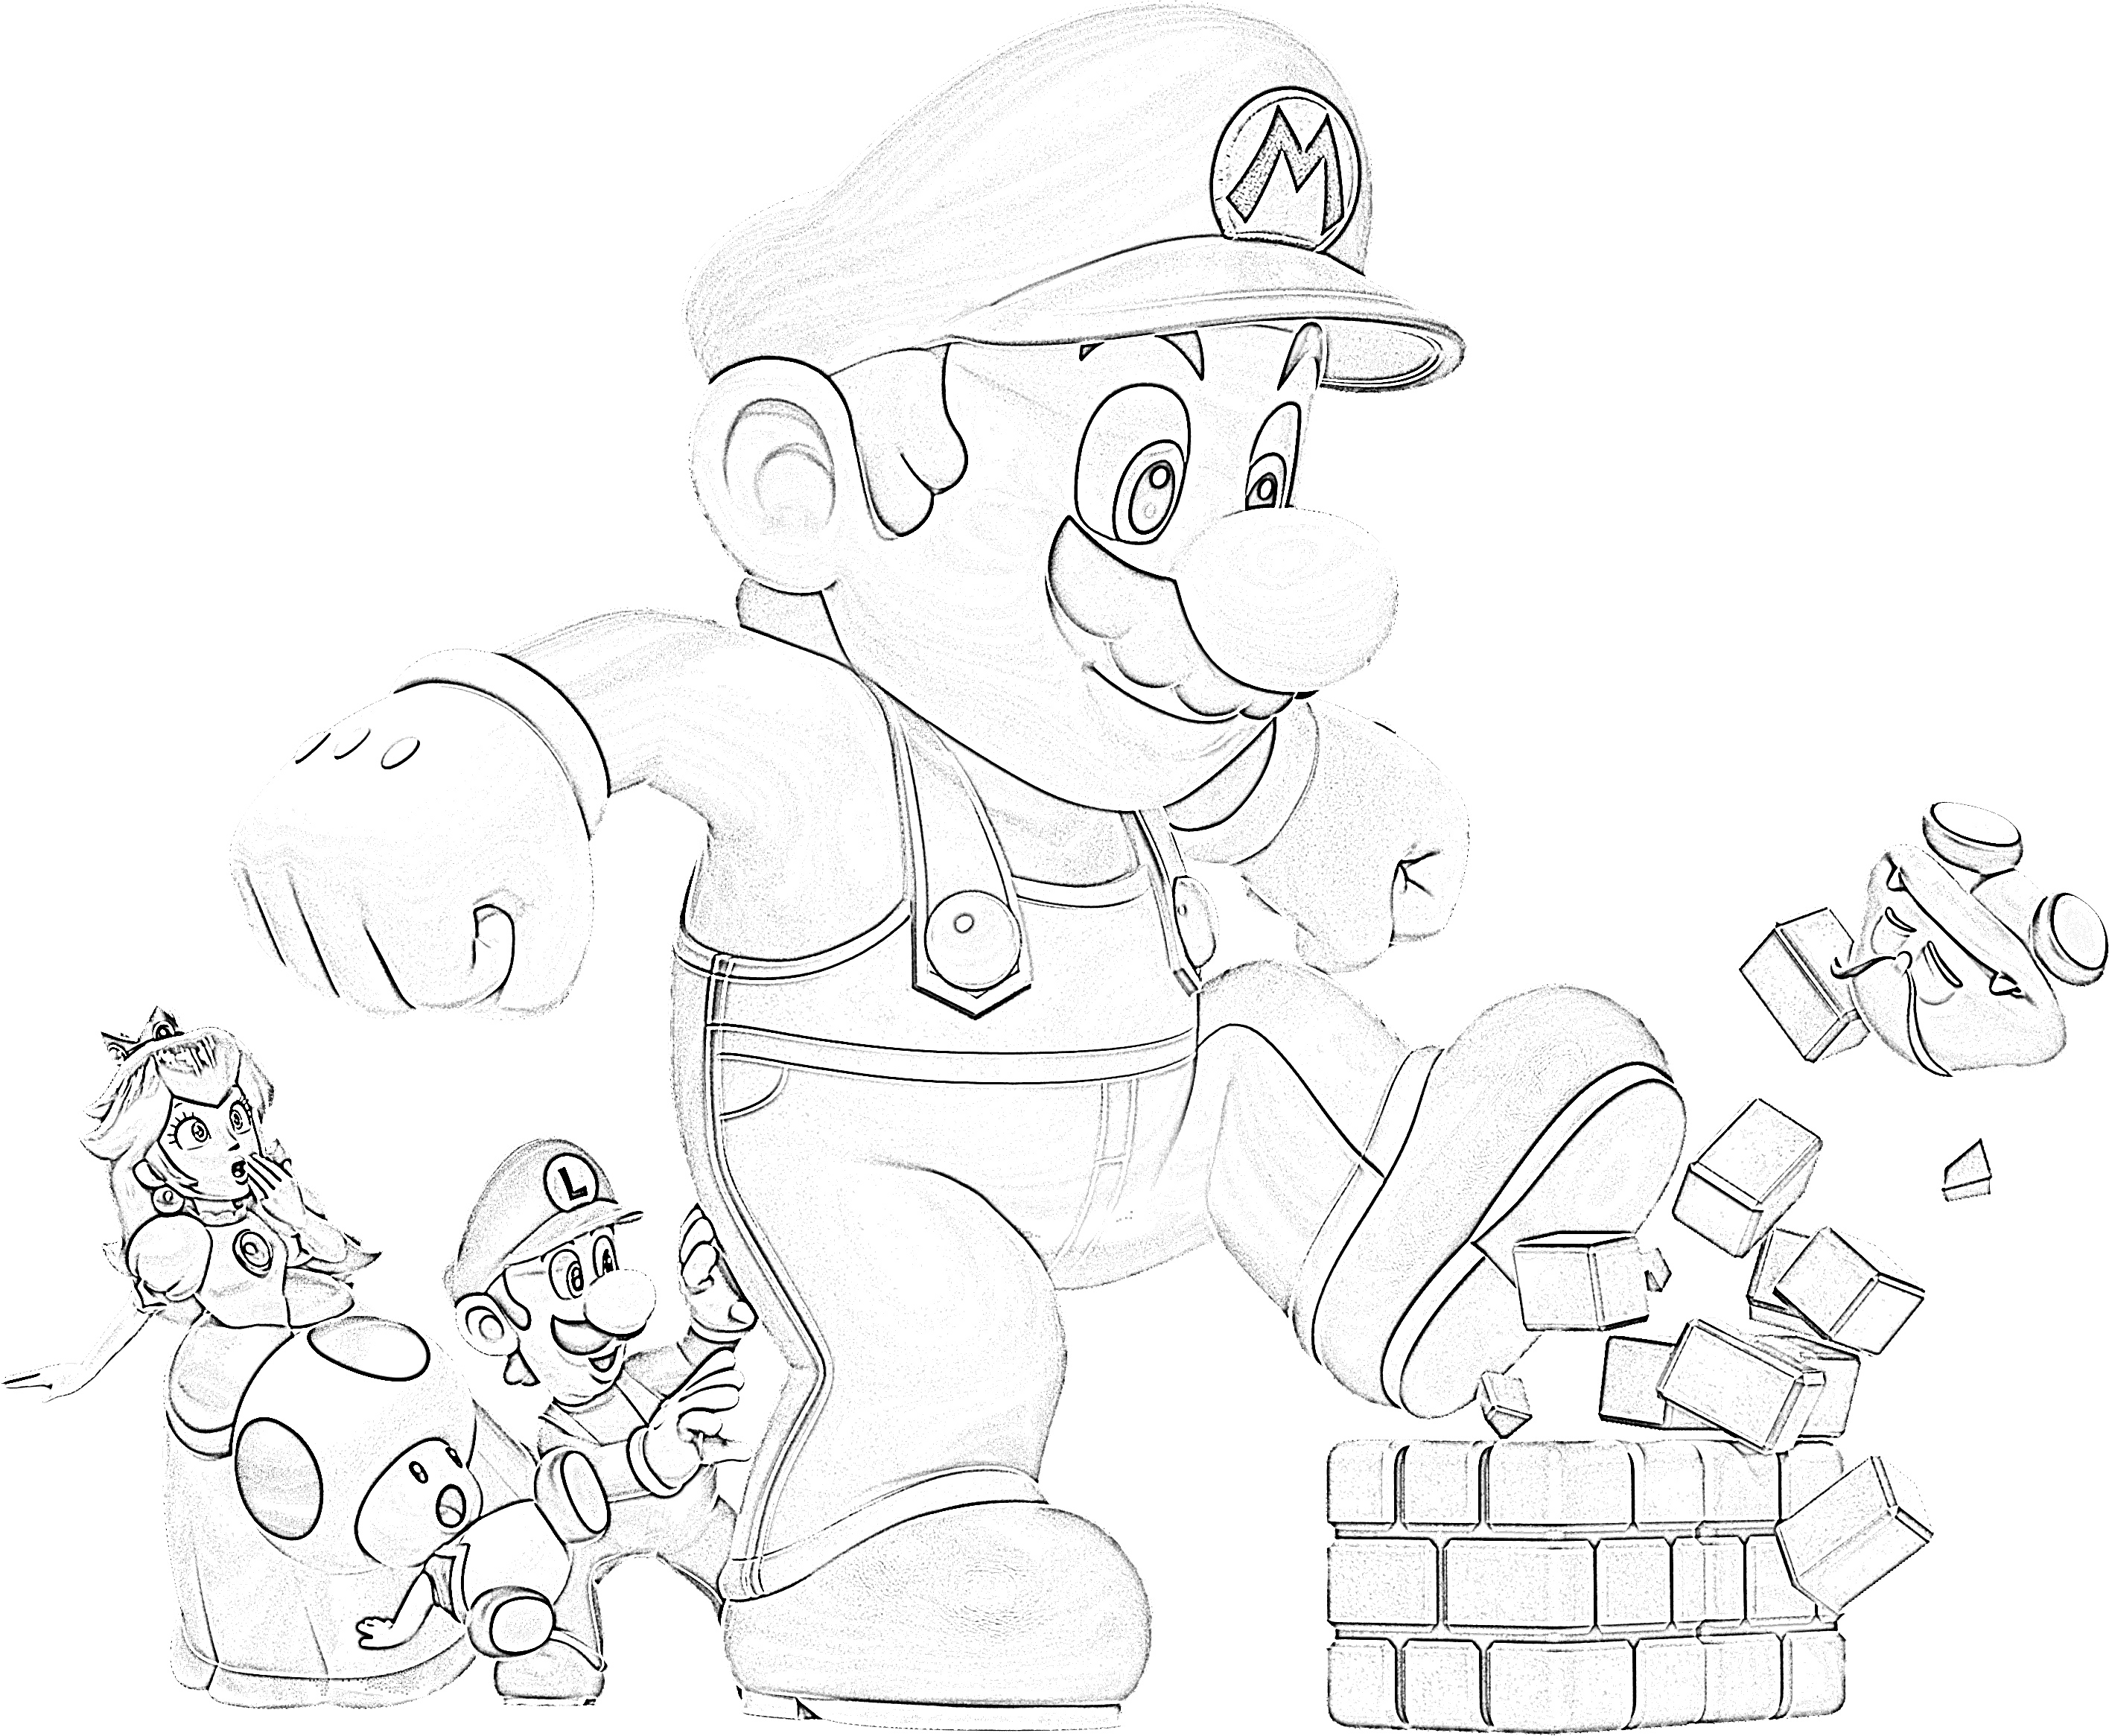 Super mario kicking bricks coloring page